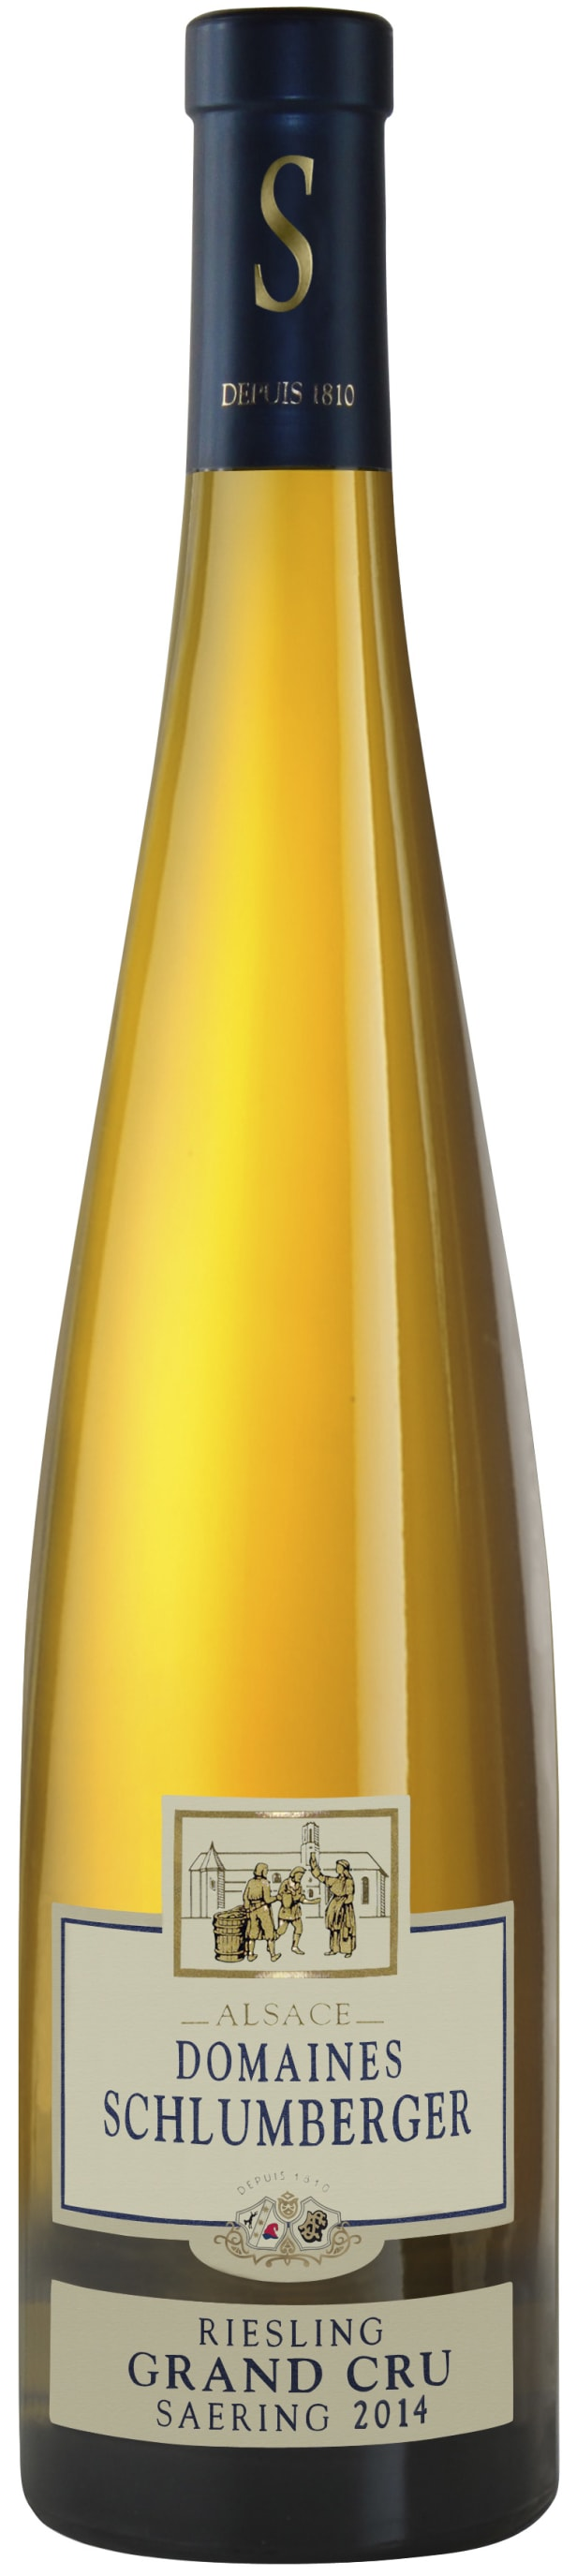 Domaines Schlumberger Riesling Grand Cru Saering 2014